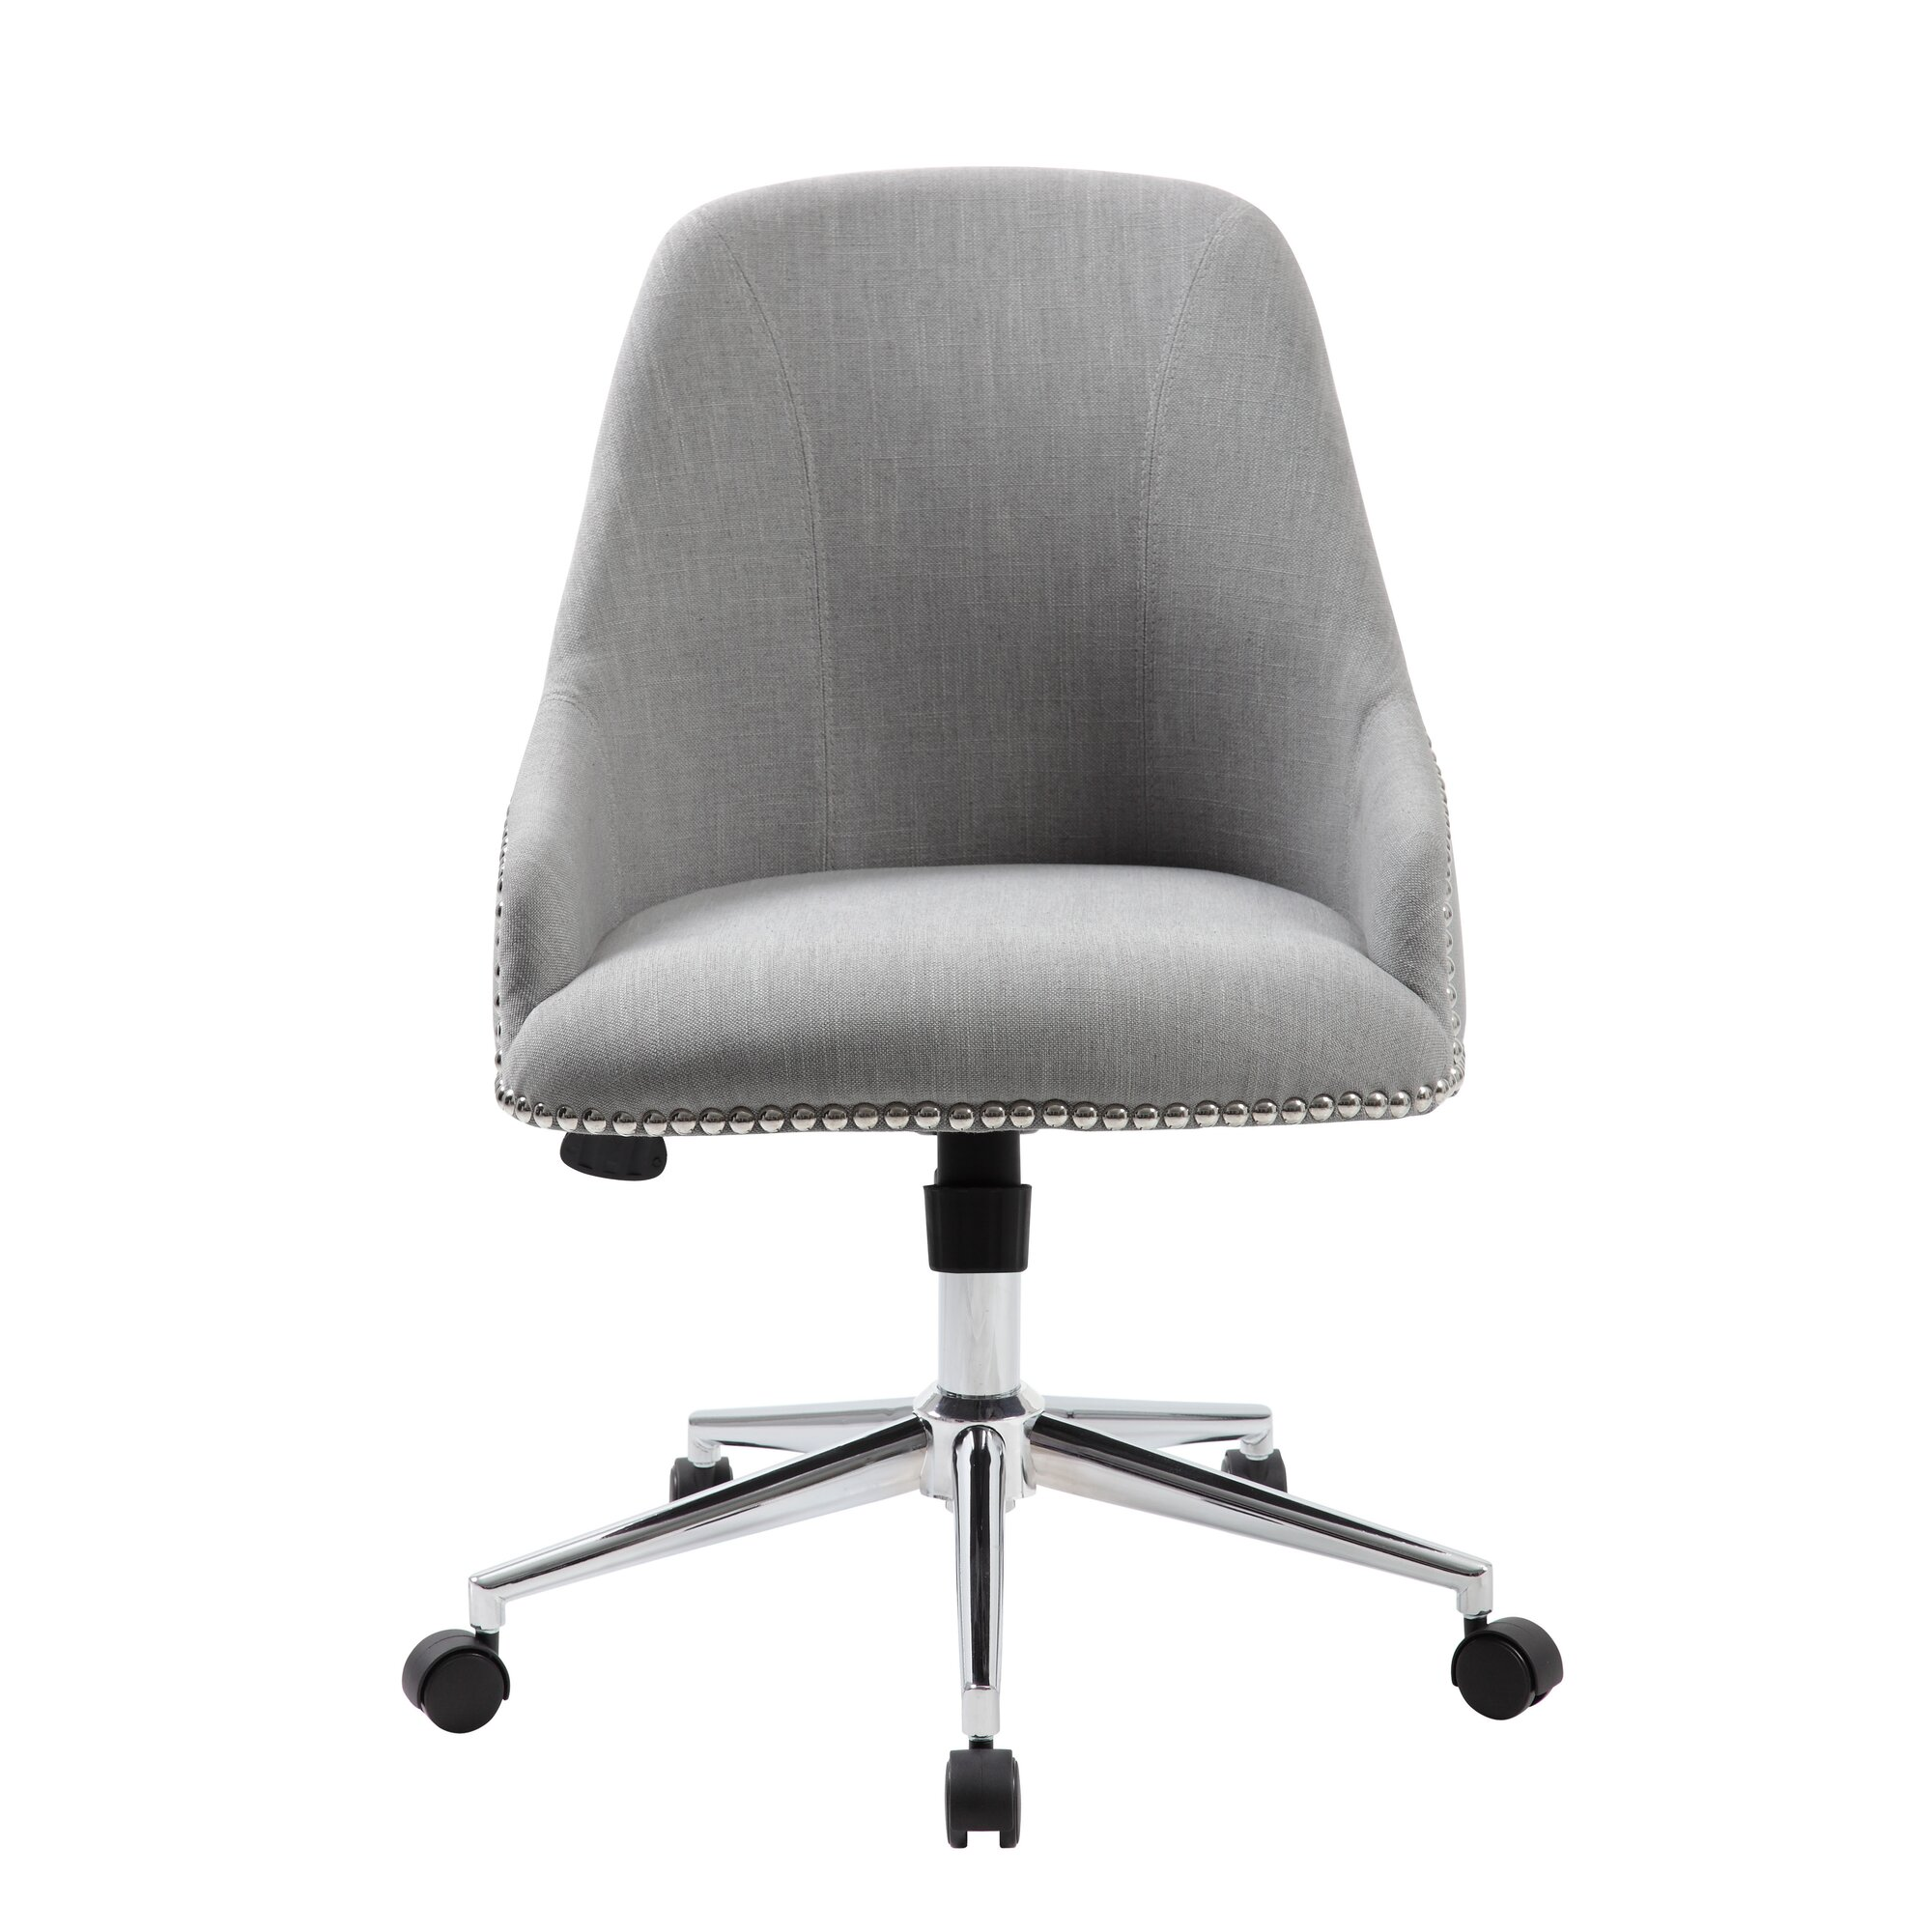 Office chair for sale jhb - Ried Mid Back Desk Chair